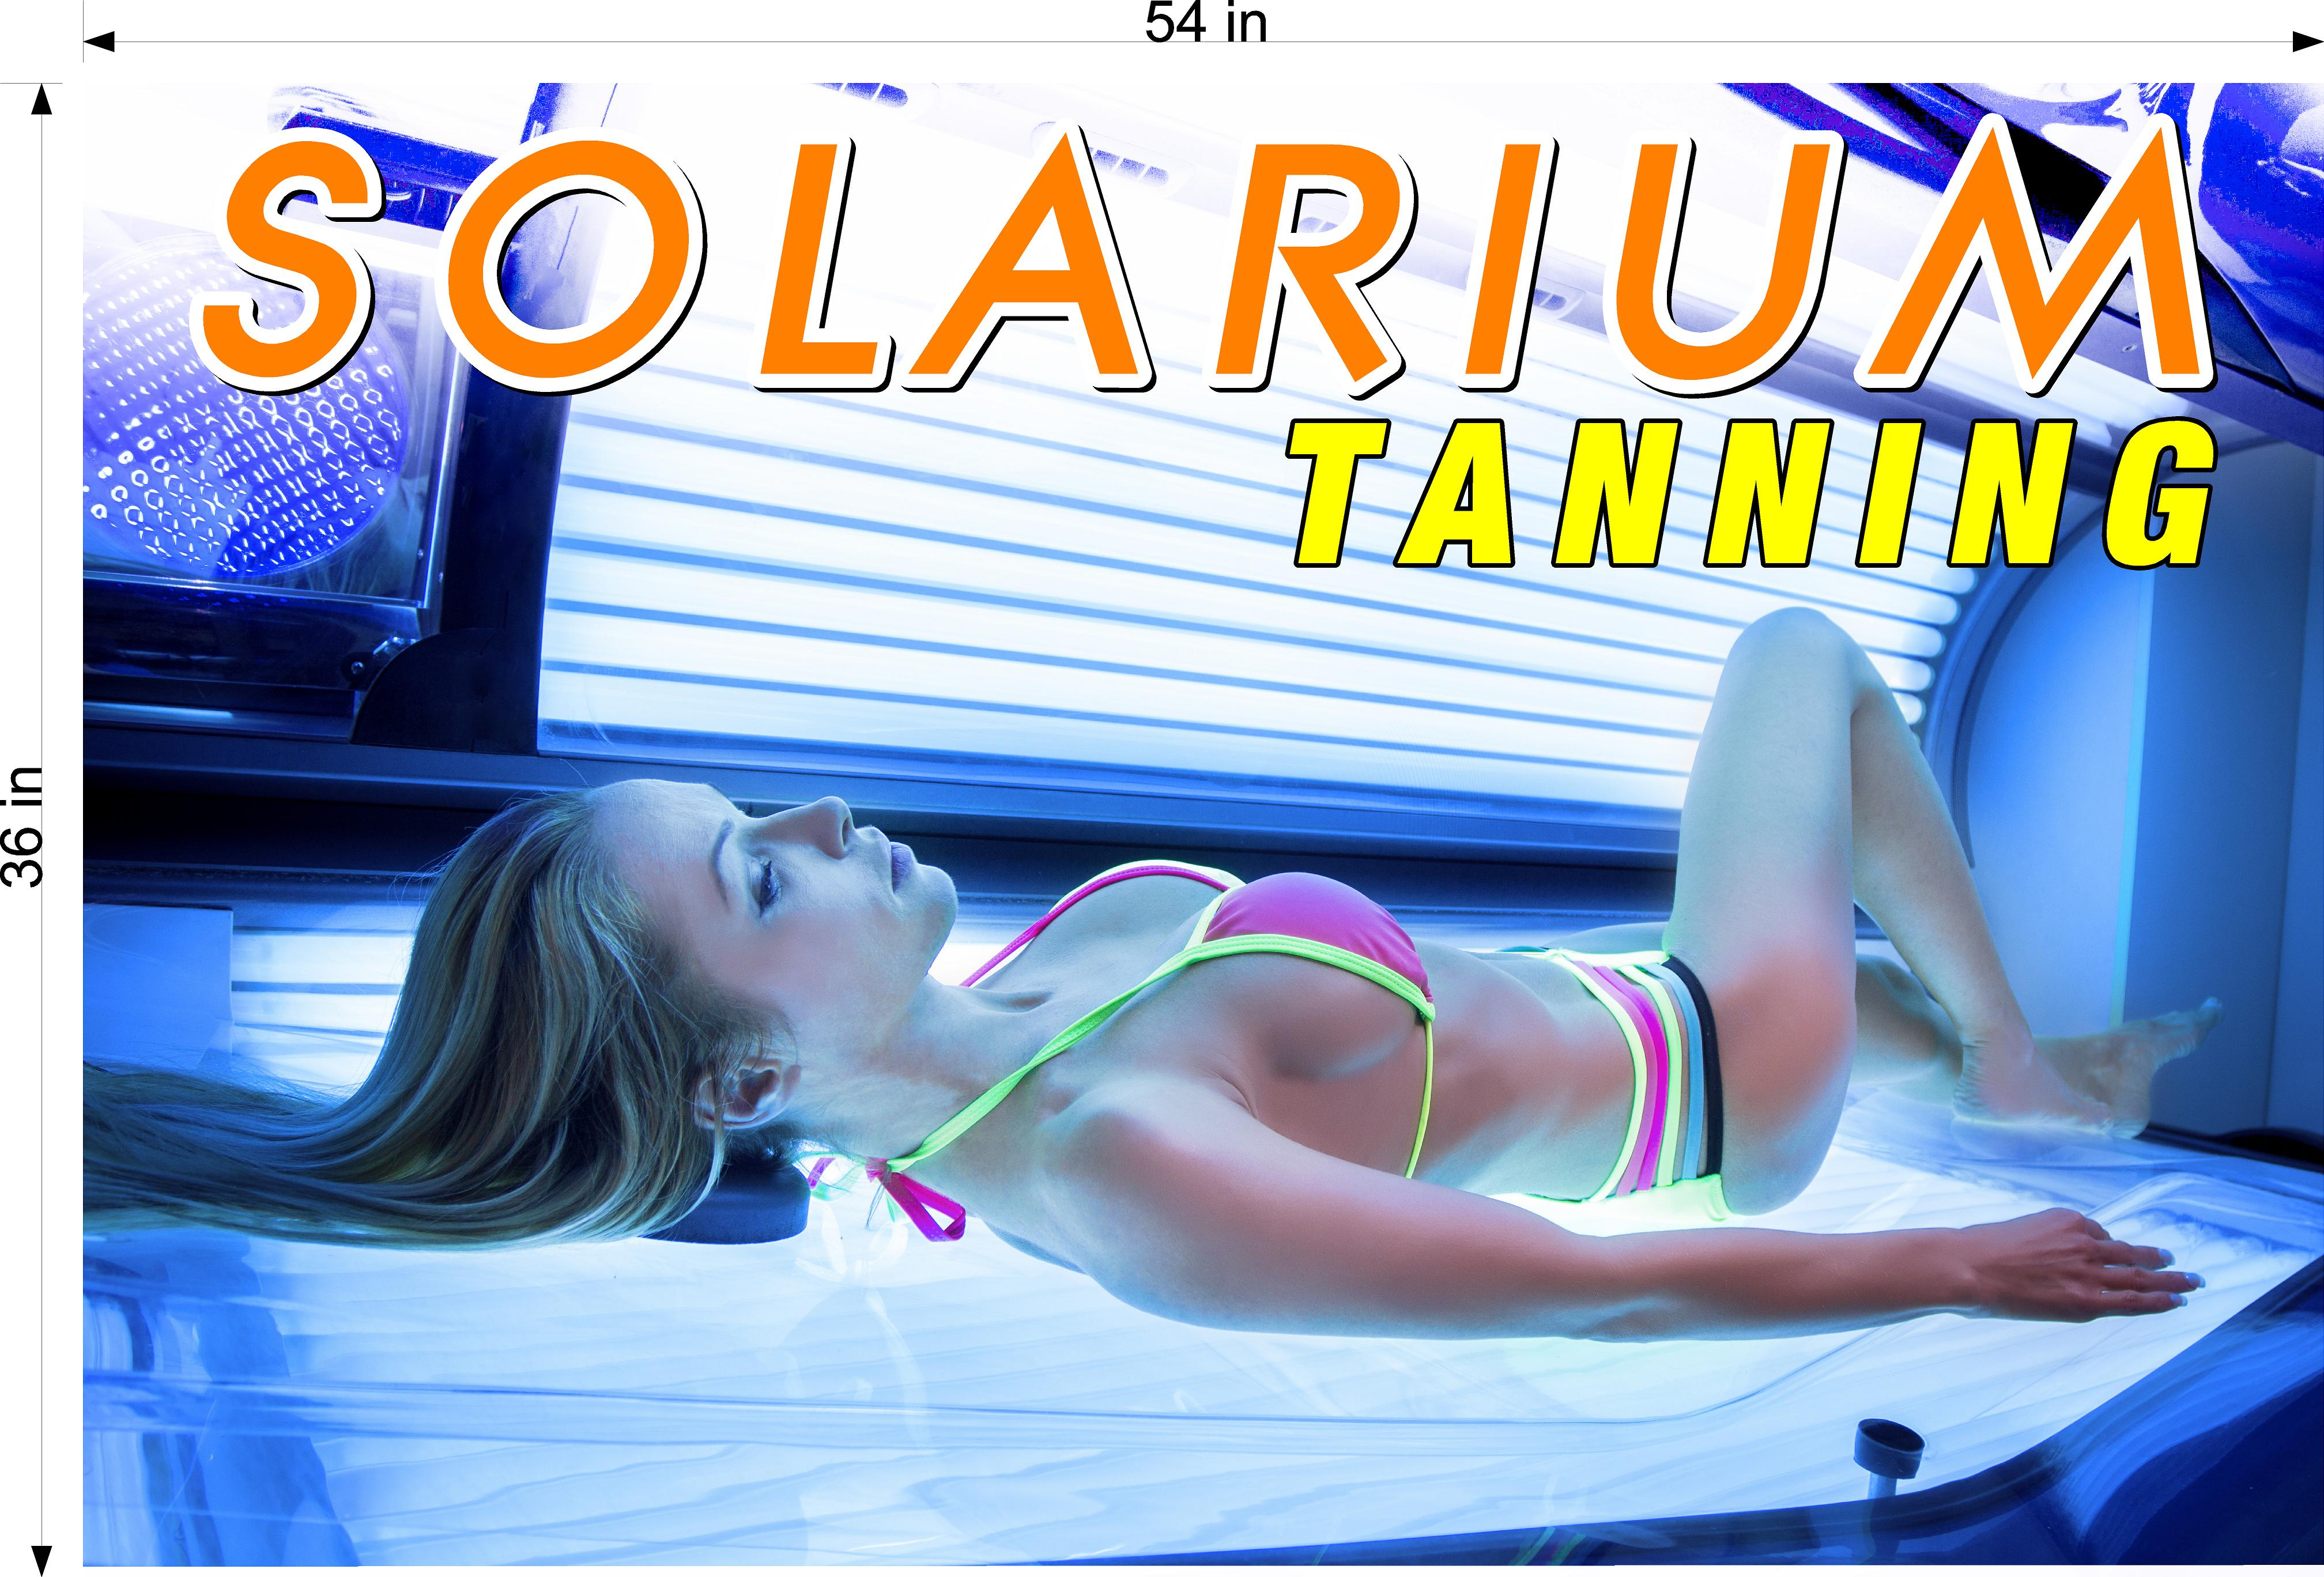 Tanning 07 Perforated Mesh One Way Vision Window Vinyl Nail Salon See-Through Sign Solarium Spray Sun Horizontal